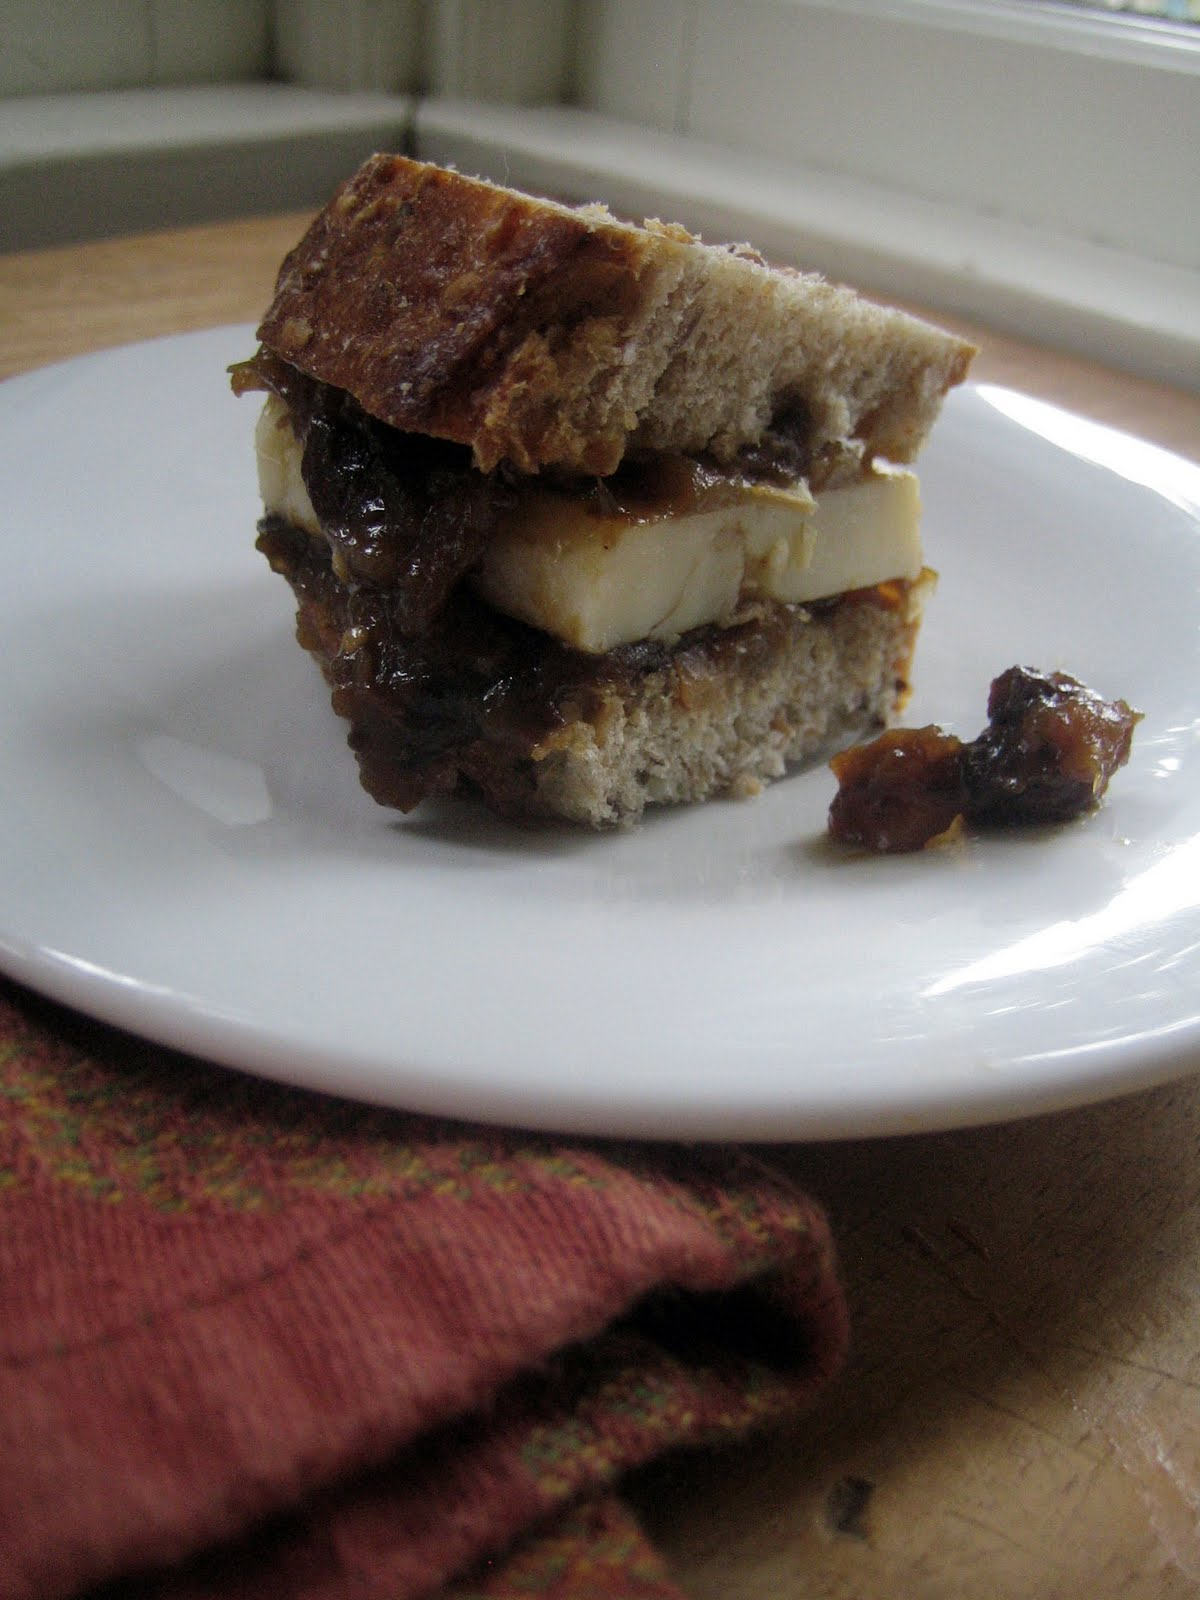 Blue Kale Road: Green Tomato and Apple Chutney